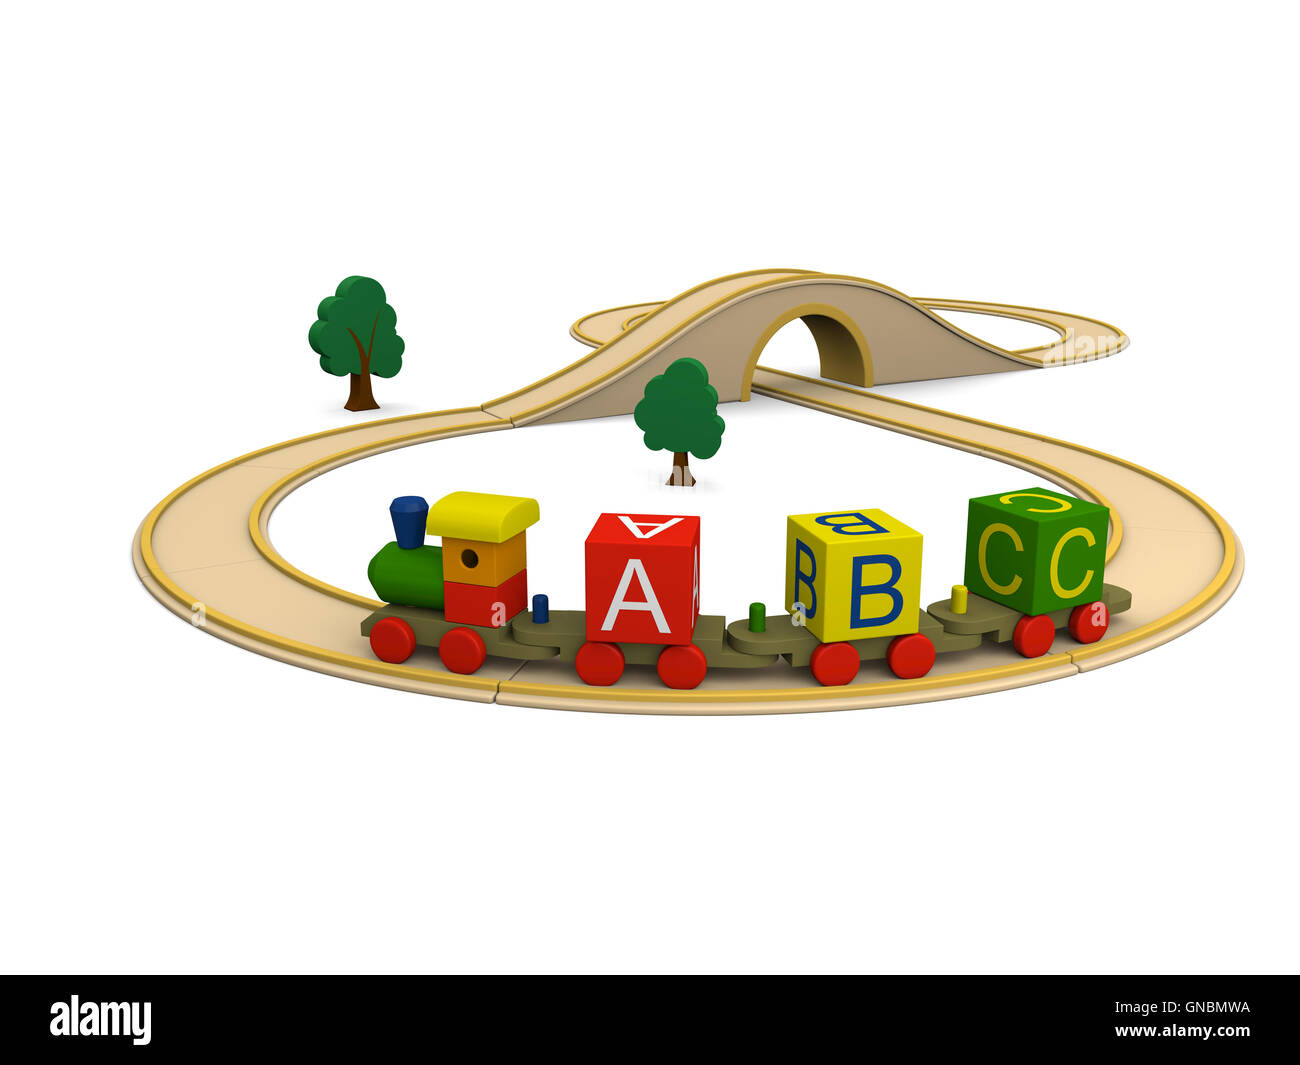 Wooden toy train carrying alphabet letters Stock Photo